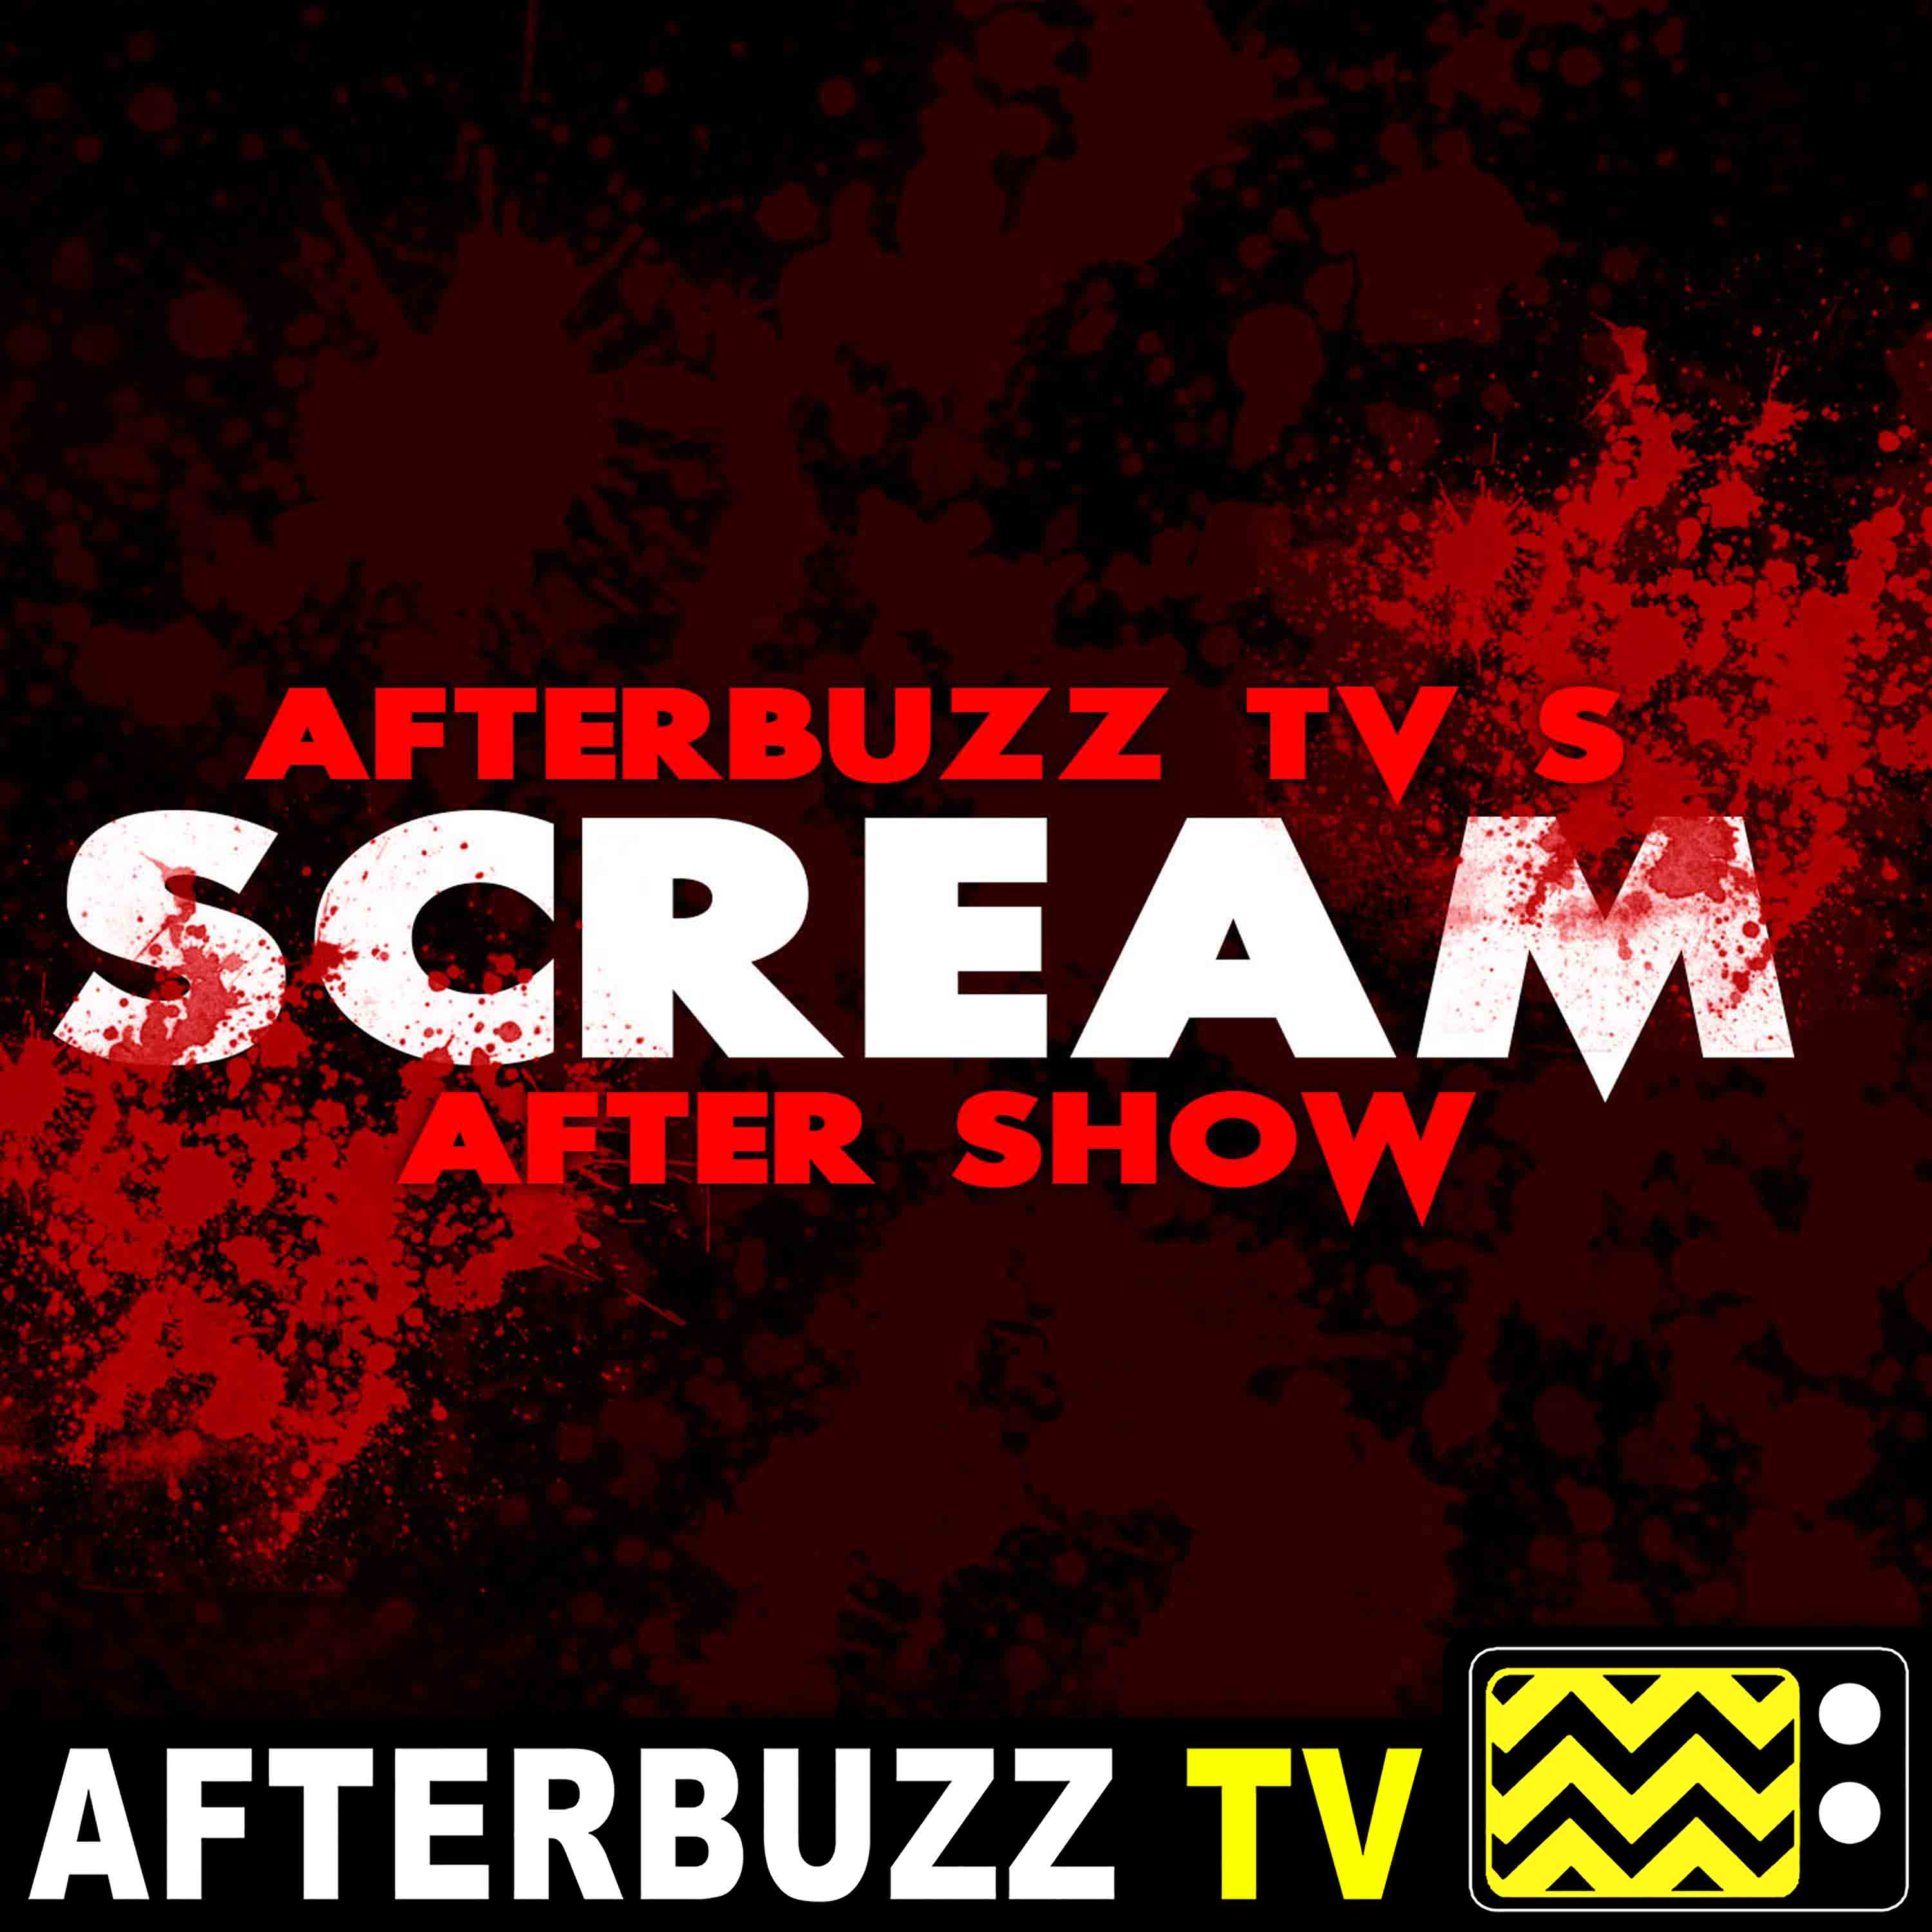 Scream Reviews and After Show